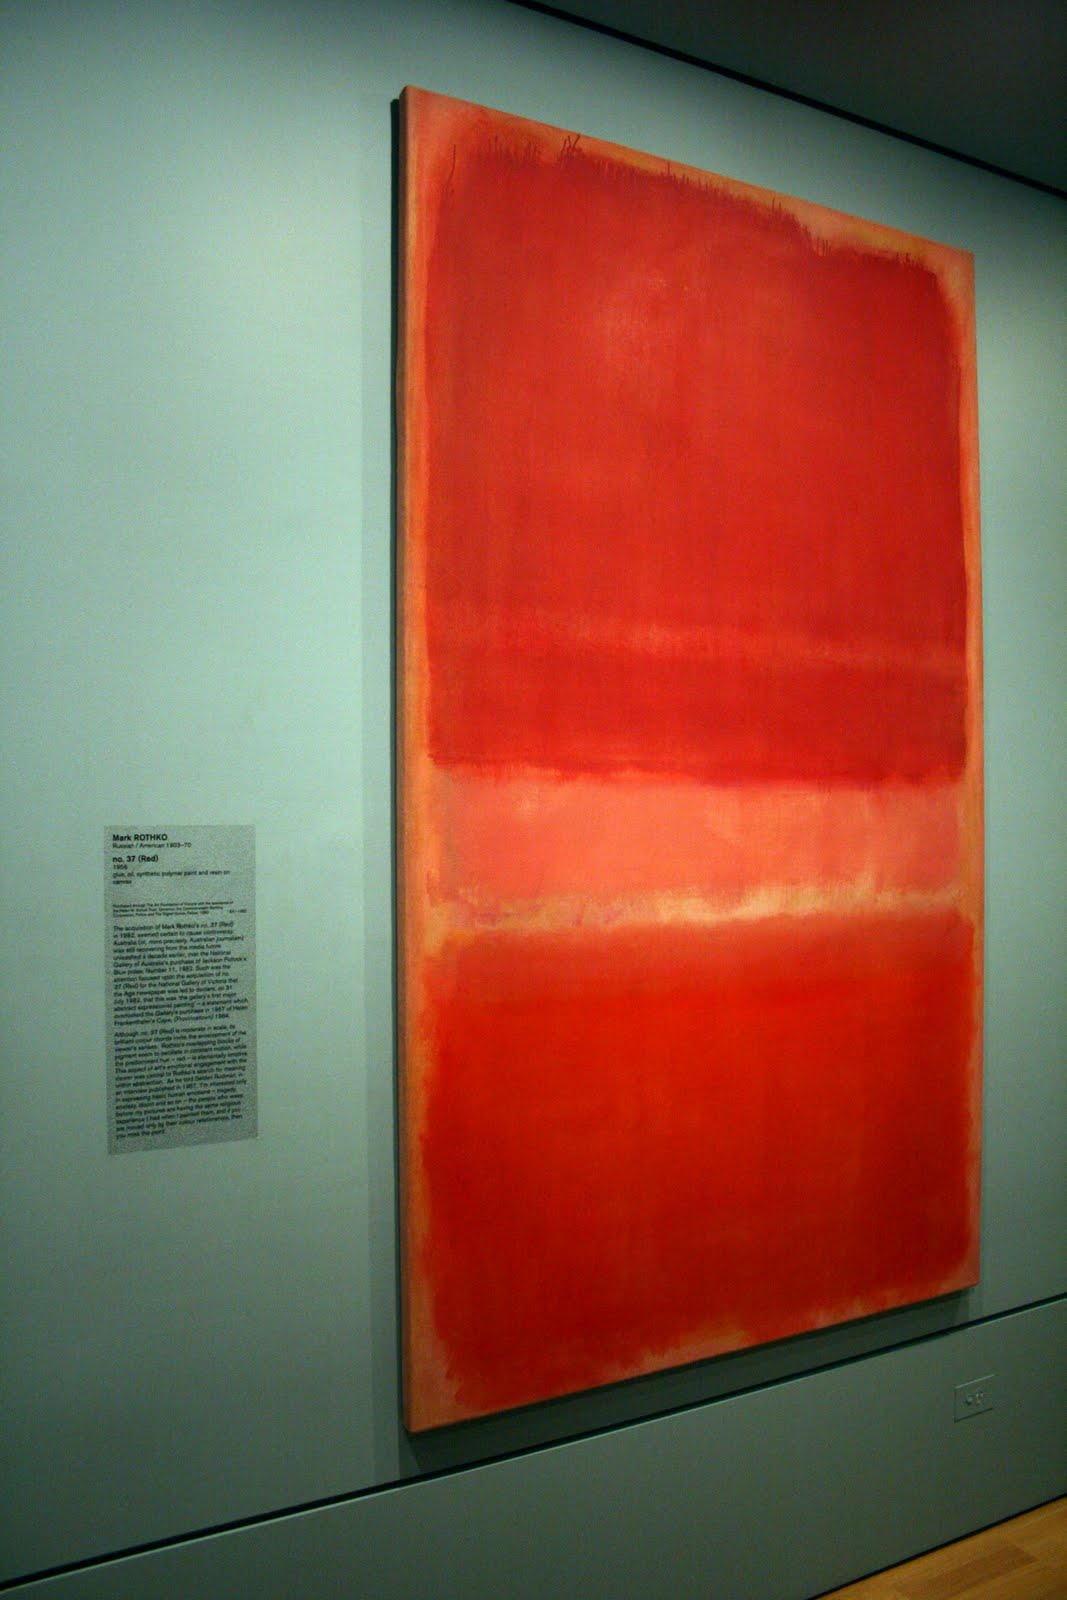 No. 37 by Mark Rothko